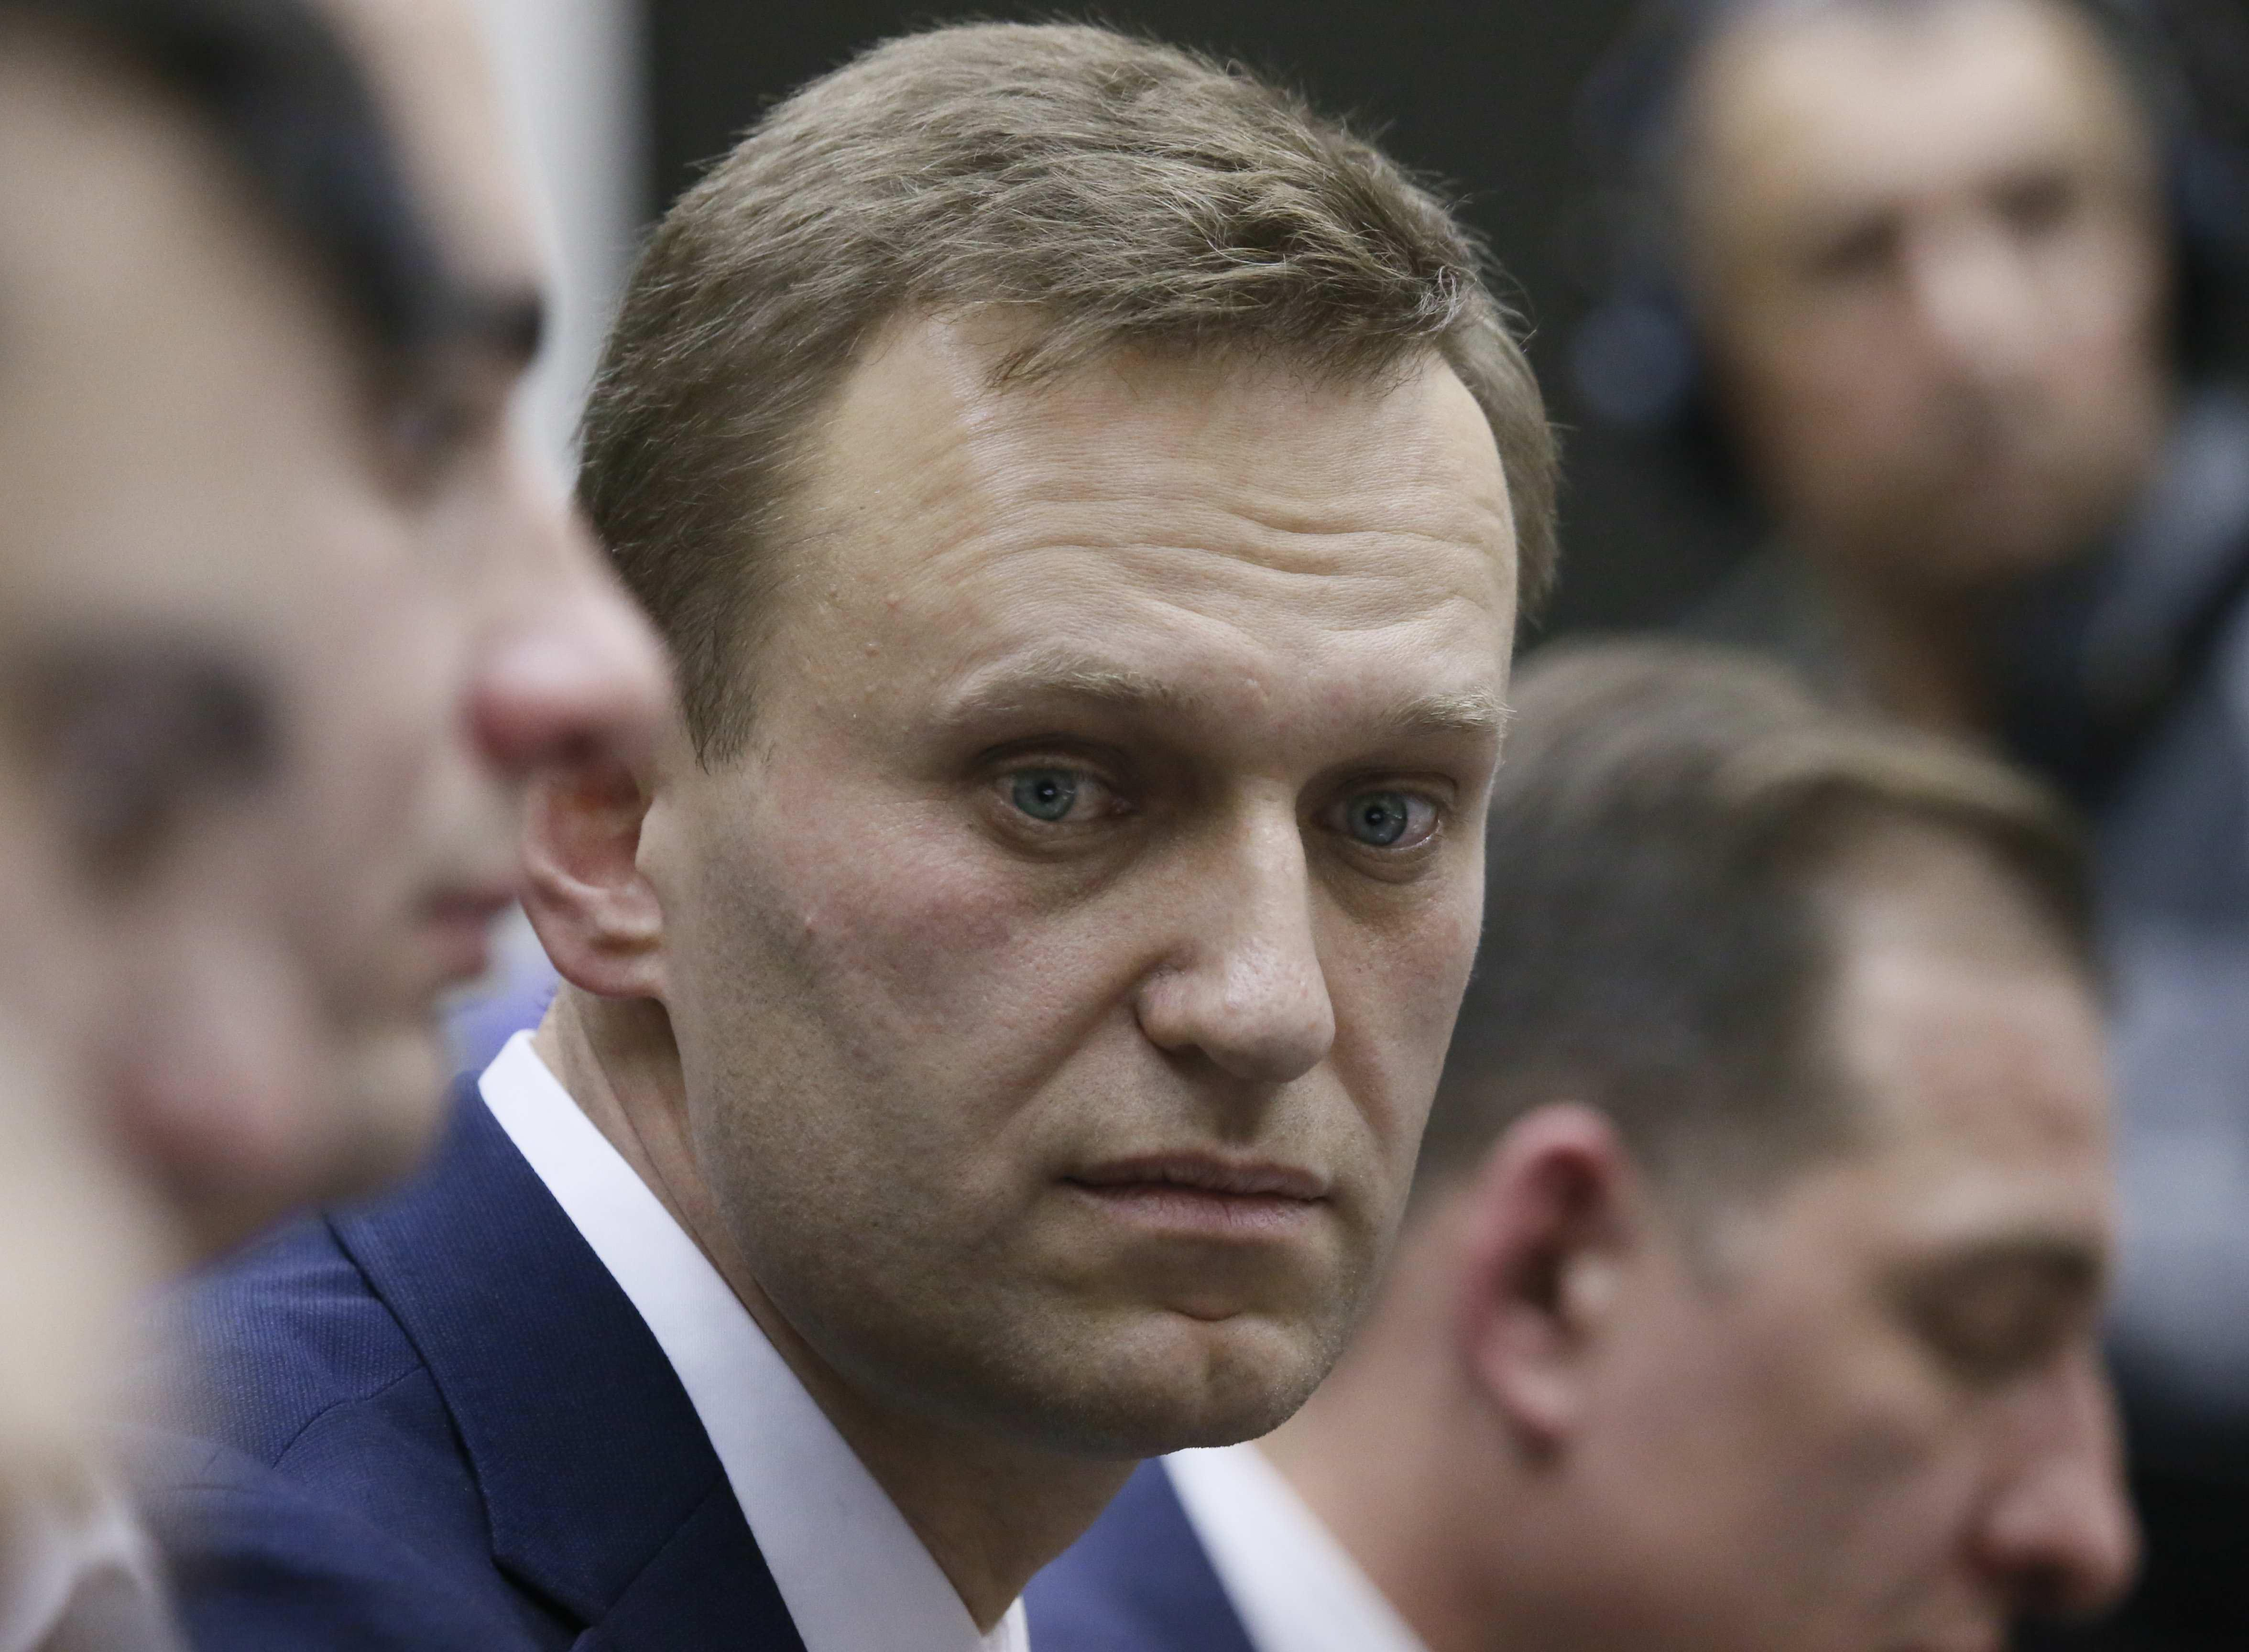 Russian opposition leader Alexei Navalny submits his documents to be registered as a presidential candidate at the Central Election Commission in Moscow, Russia December 24, 2017. Photo: APn